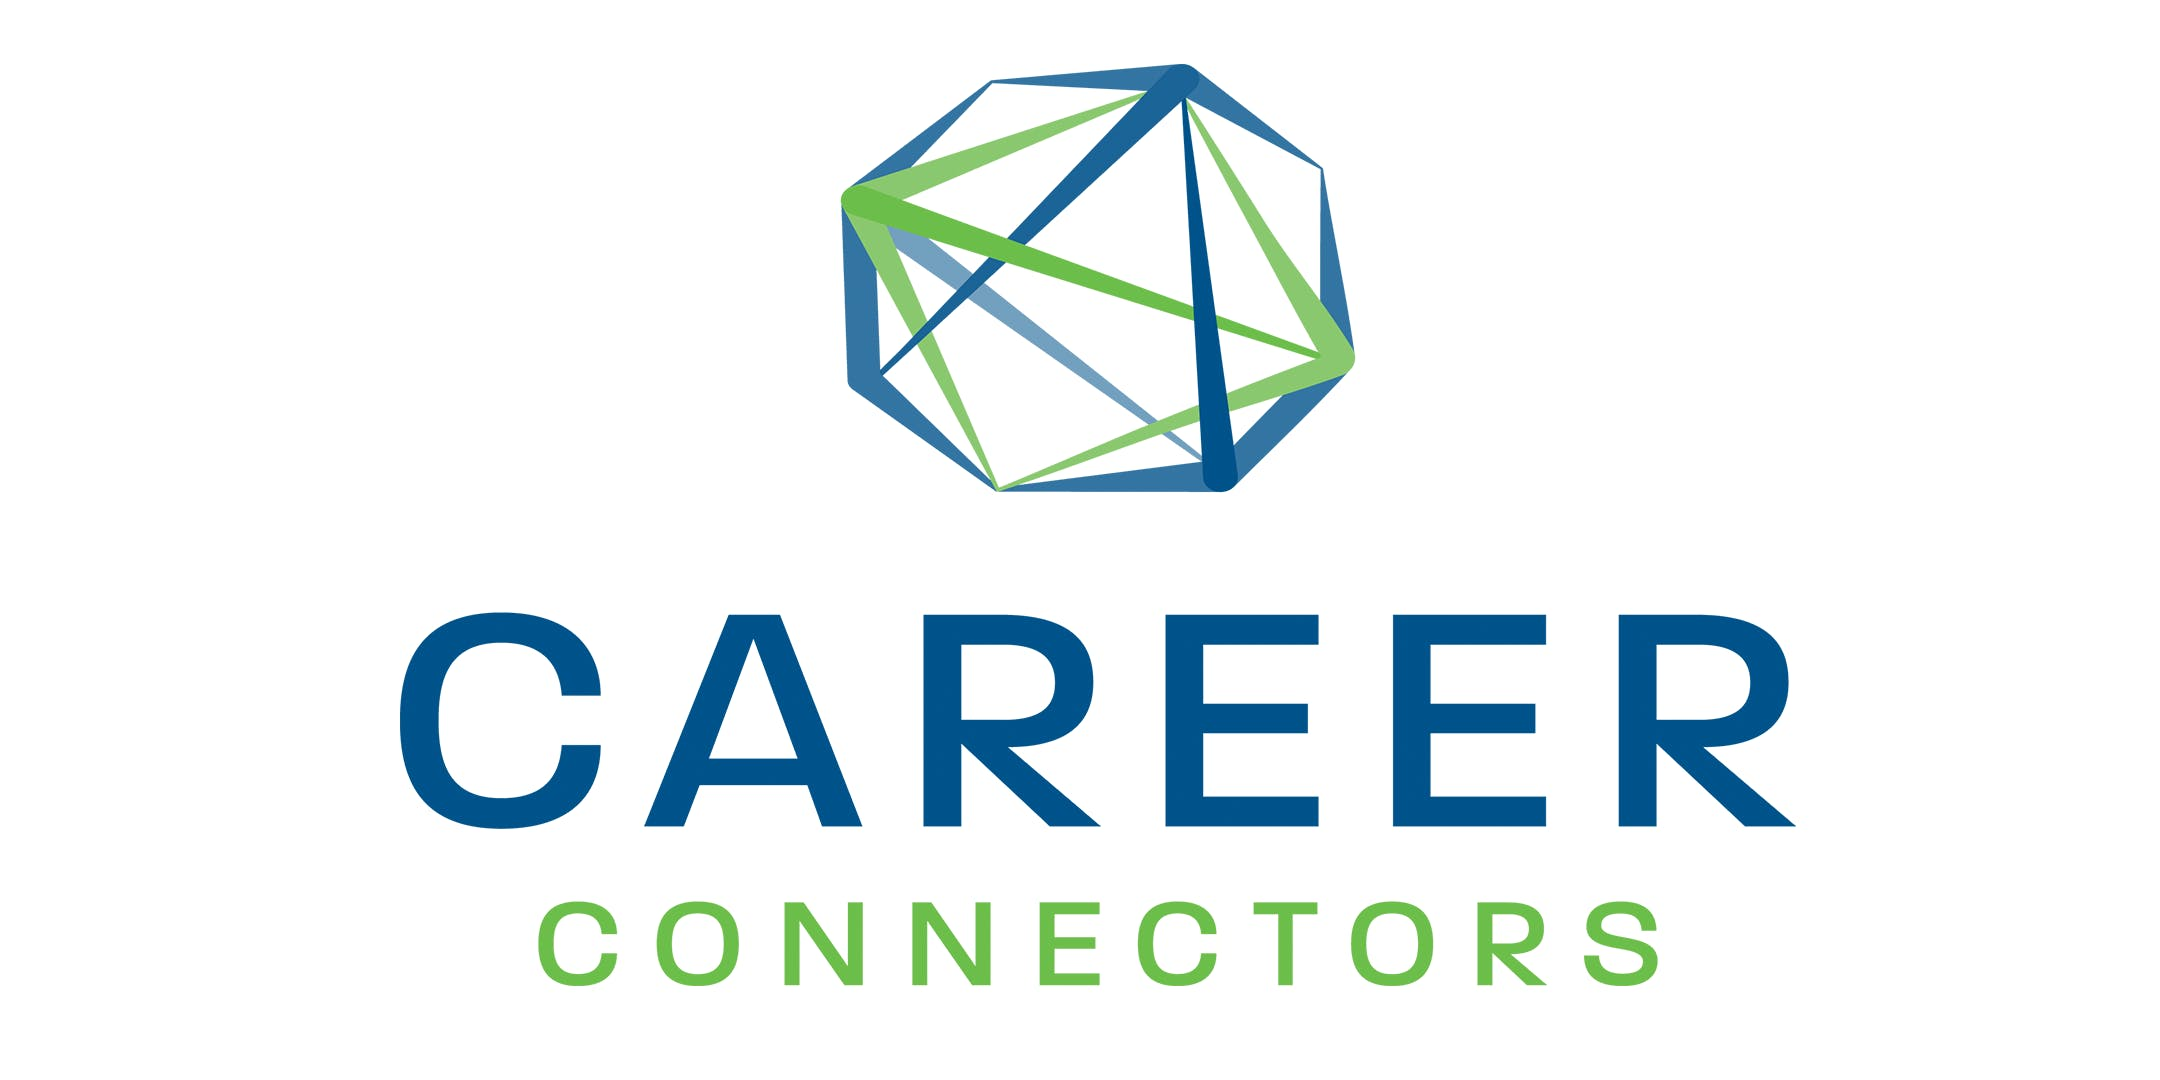 Scottsdale - Becoming Unstoppable   Hiring Companies: Solar Mosaic, Career Evolutions, Farmers